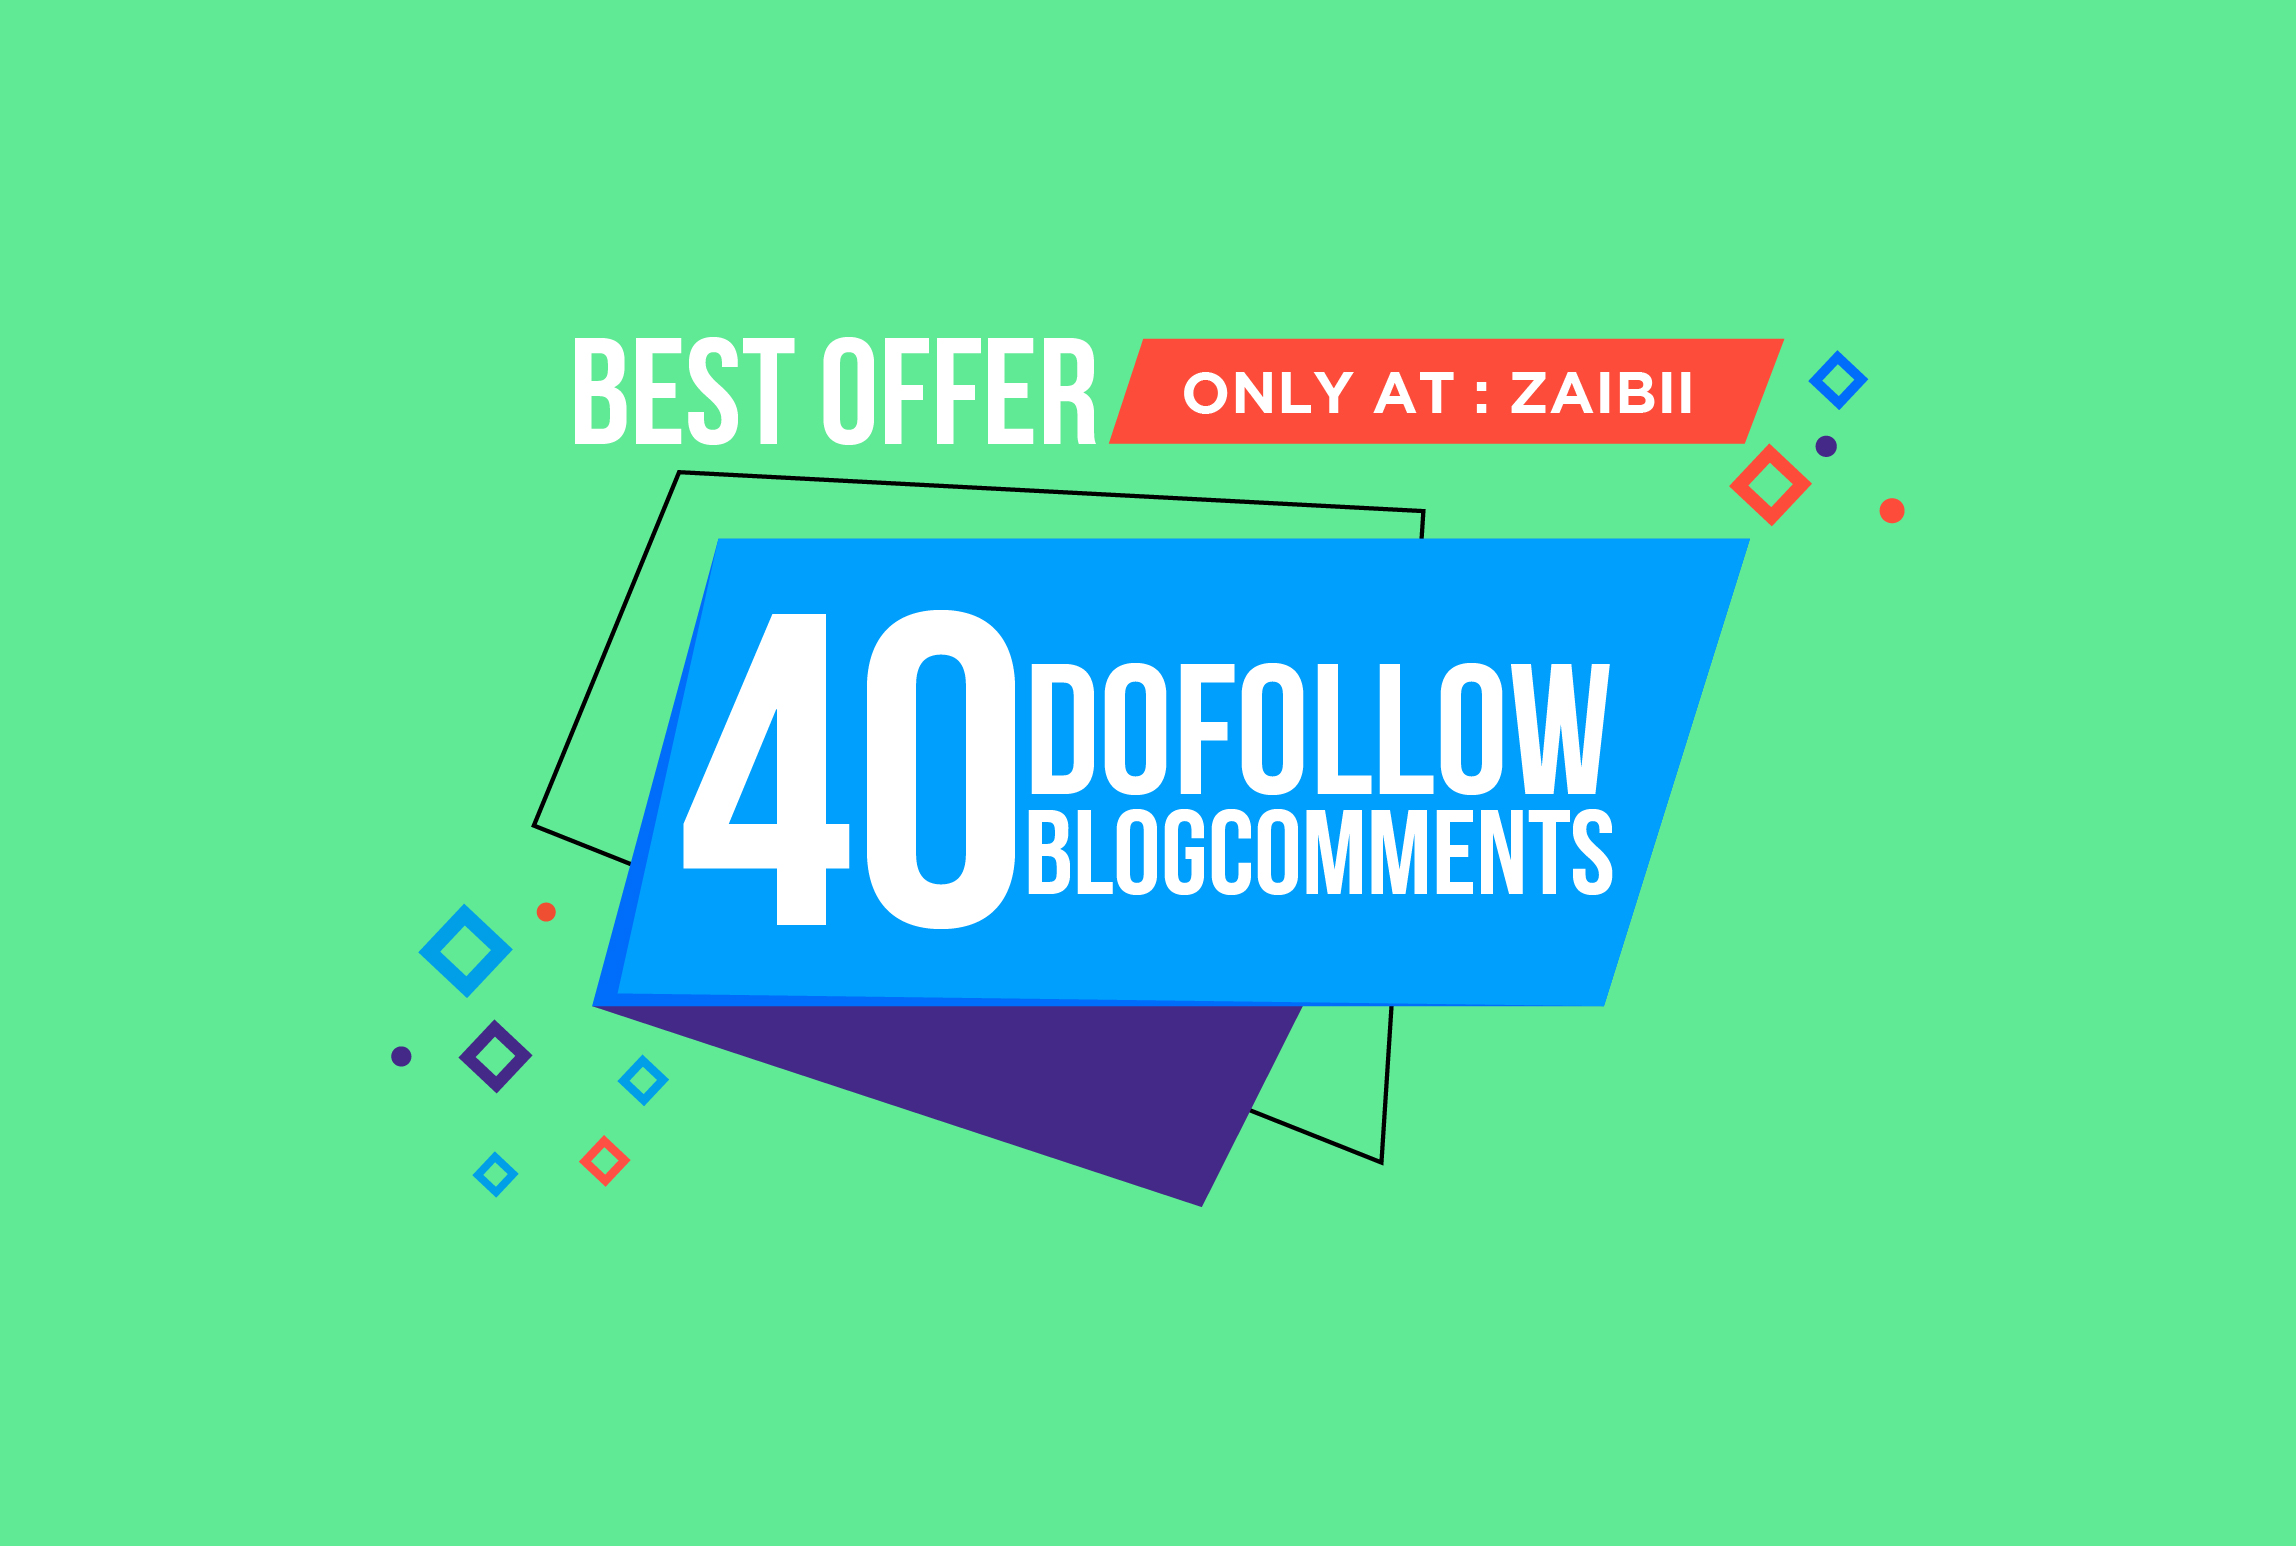 40 manual Dofollow Blogcomment on High DA PA Backlinks